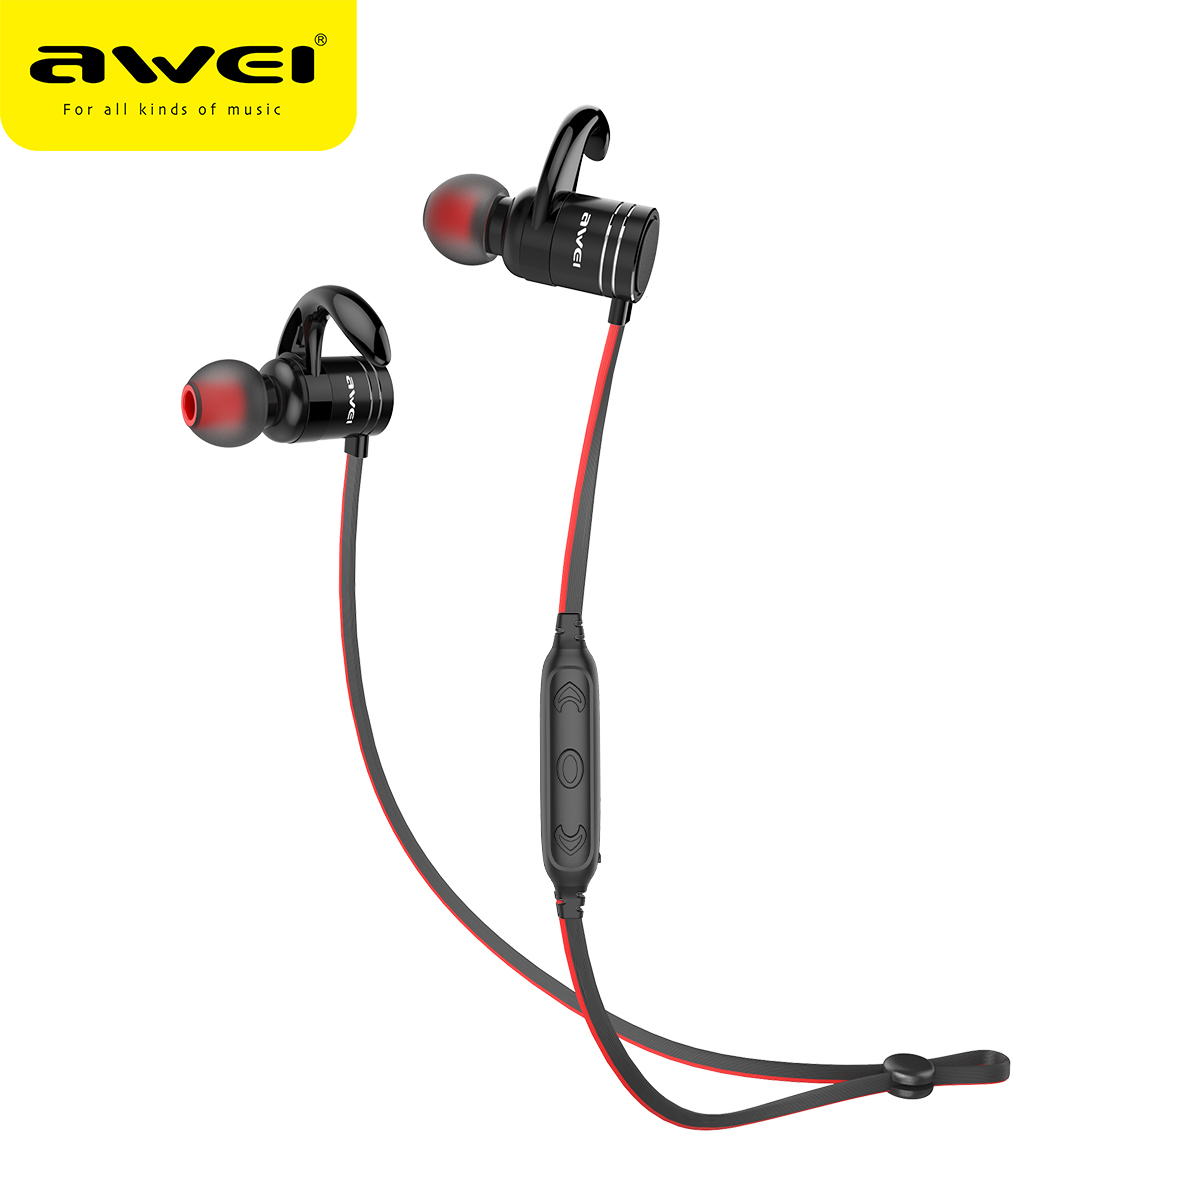 Awei AK7 Wireless Sport Headphone Bluetooth Earphone Megnetic Headphones Headset Stereo hifi sound 10h with microphone awei g20bl bluetooth earphone headphone dual driver headset wireless sport earphone bass sound auriculares inalambrico bluetooth